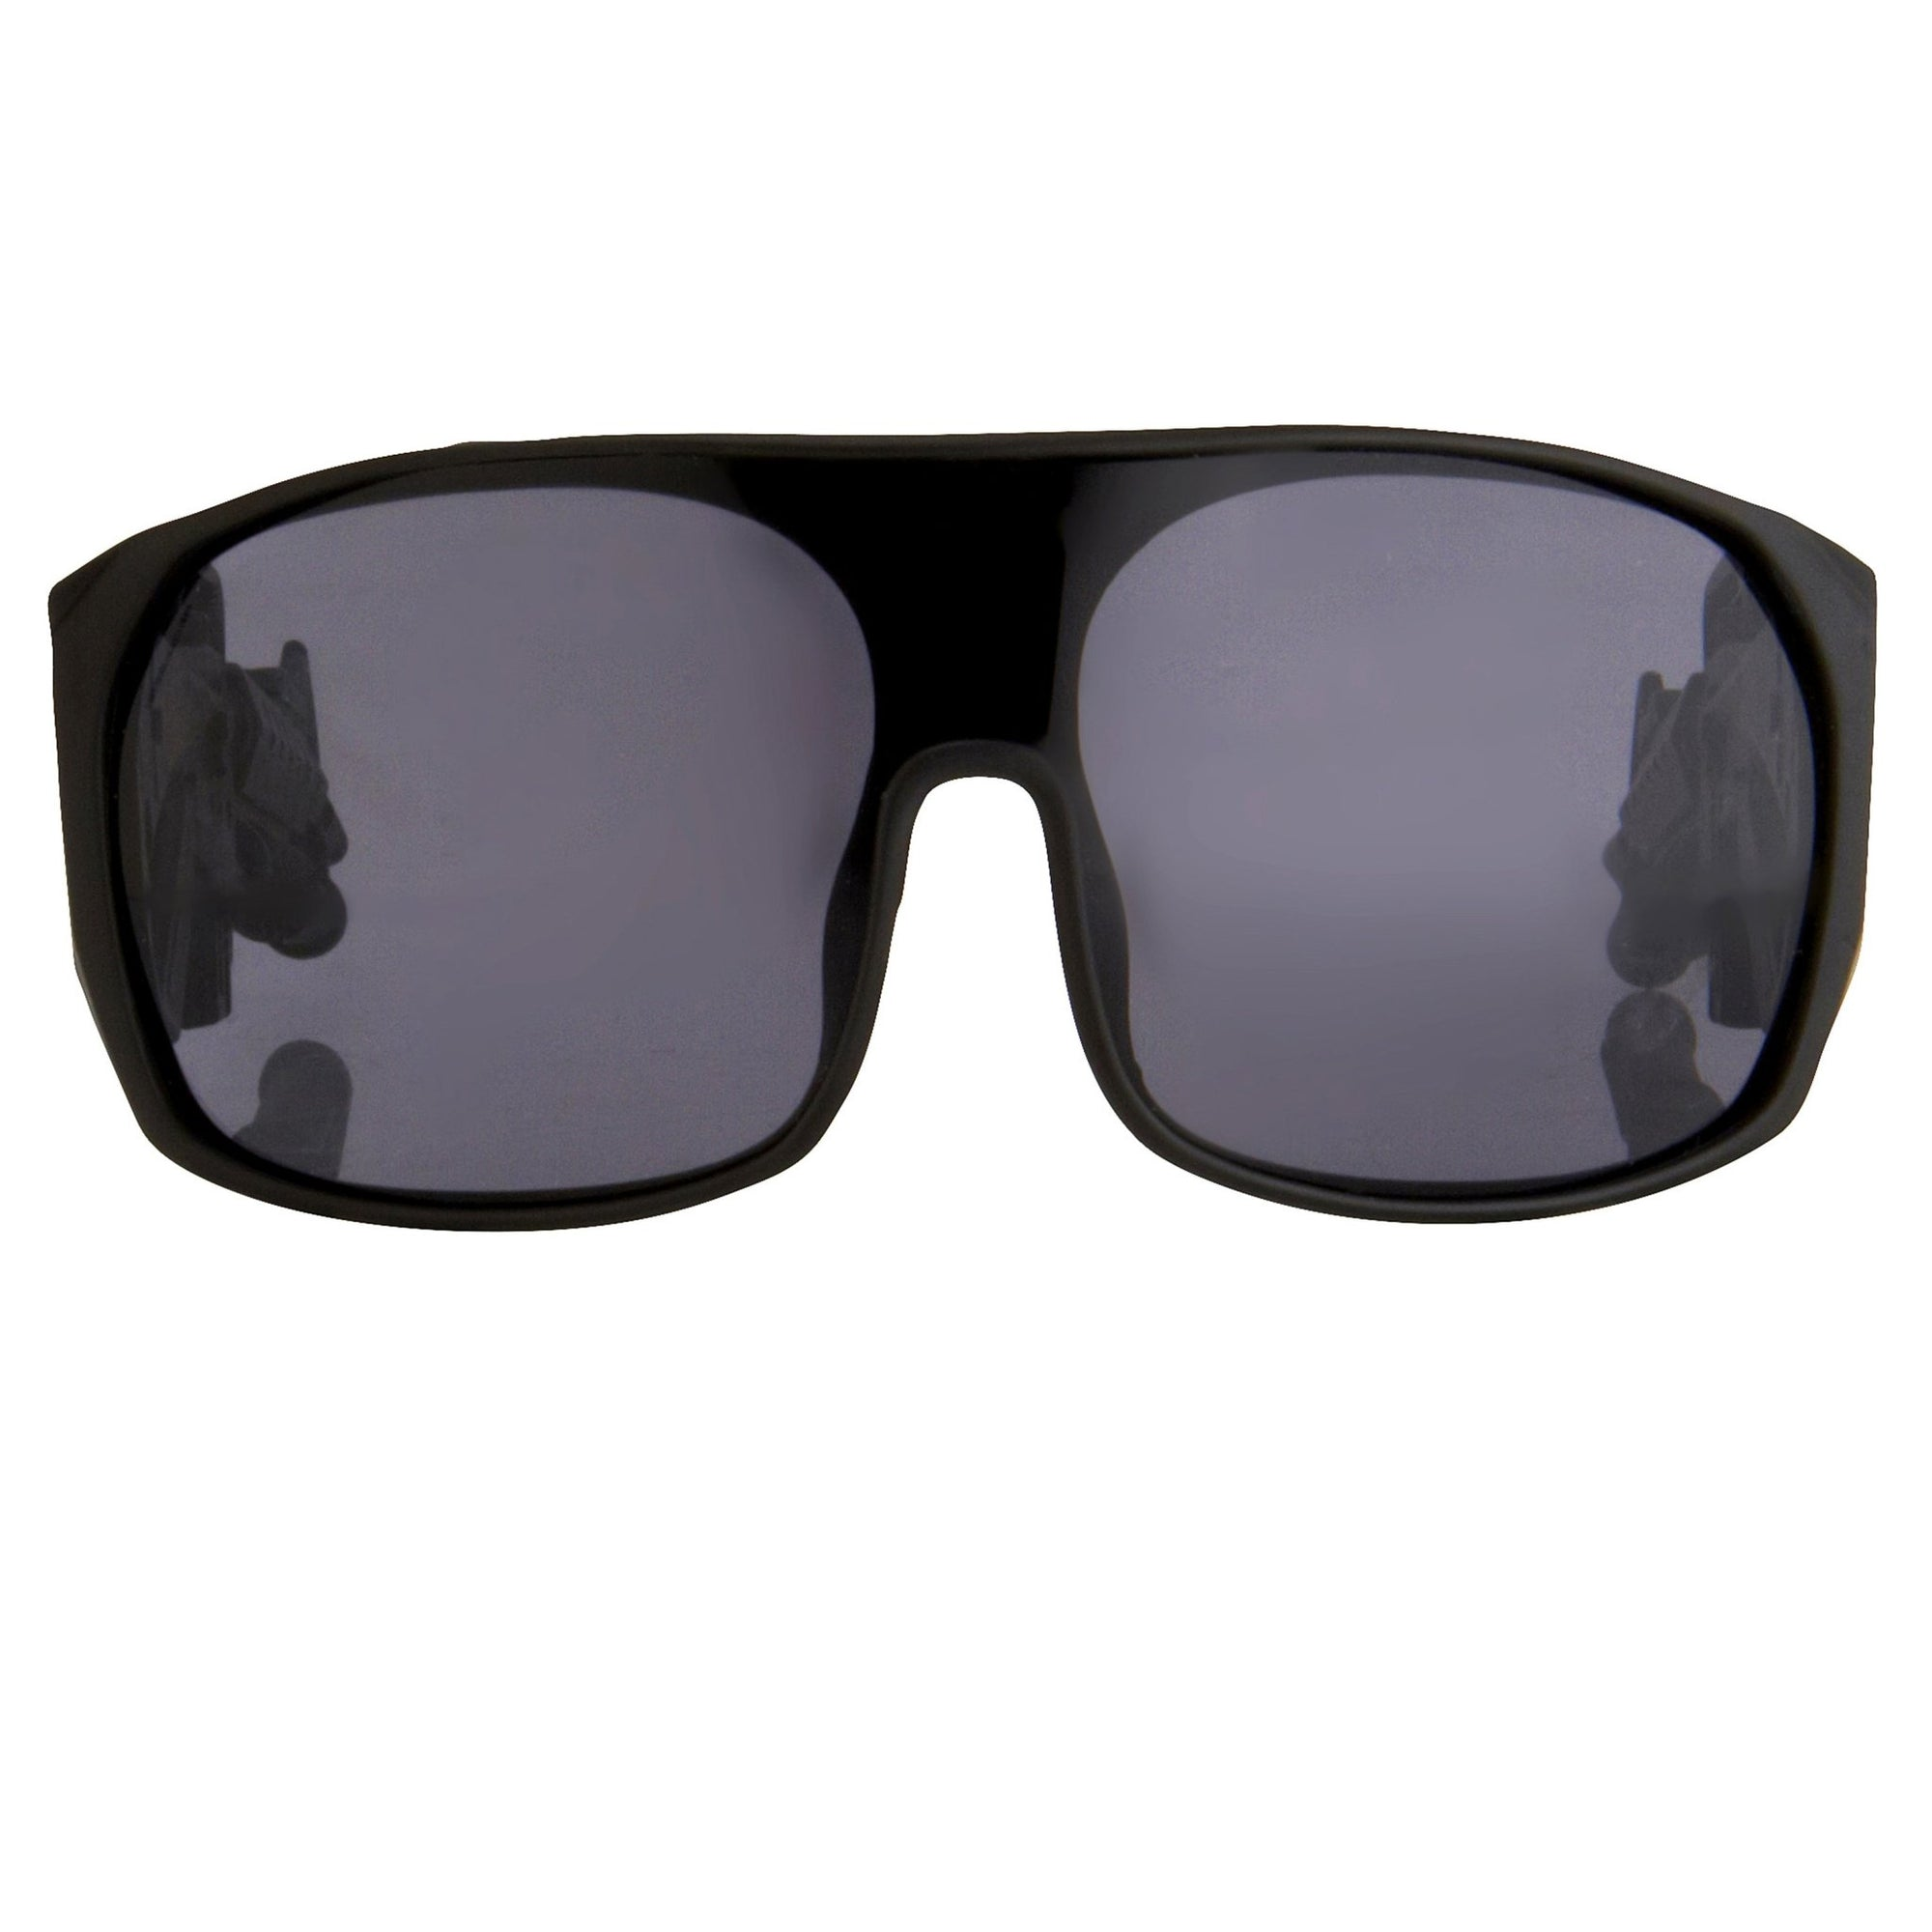 Jeremy Scott Sunglasses Rectangular Black With Solid Grey Category 3 Lenses JSARMYC1SUN - Watches & Crystals